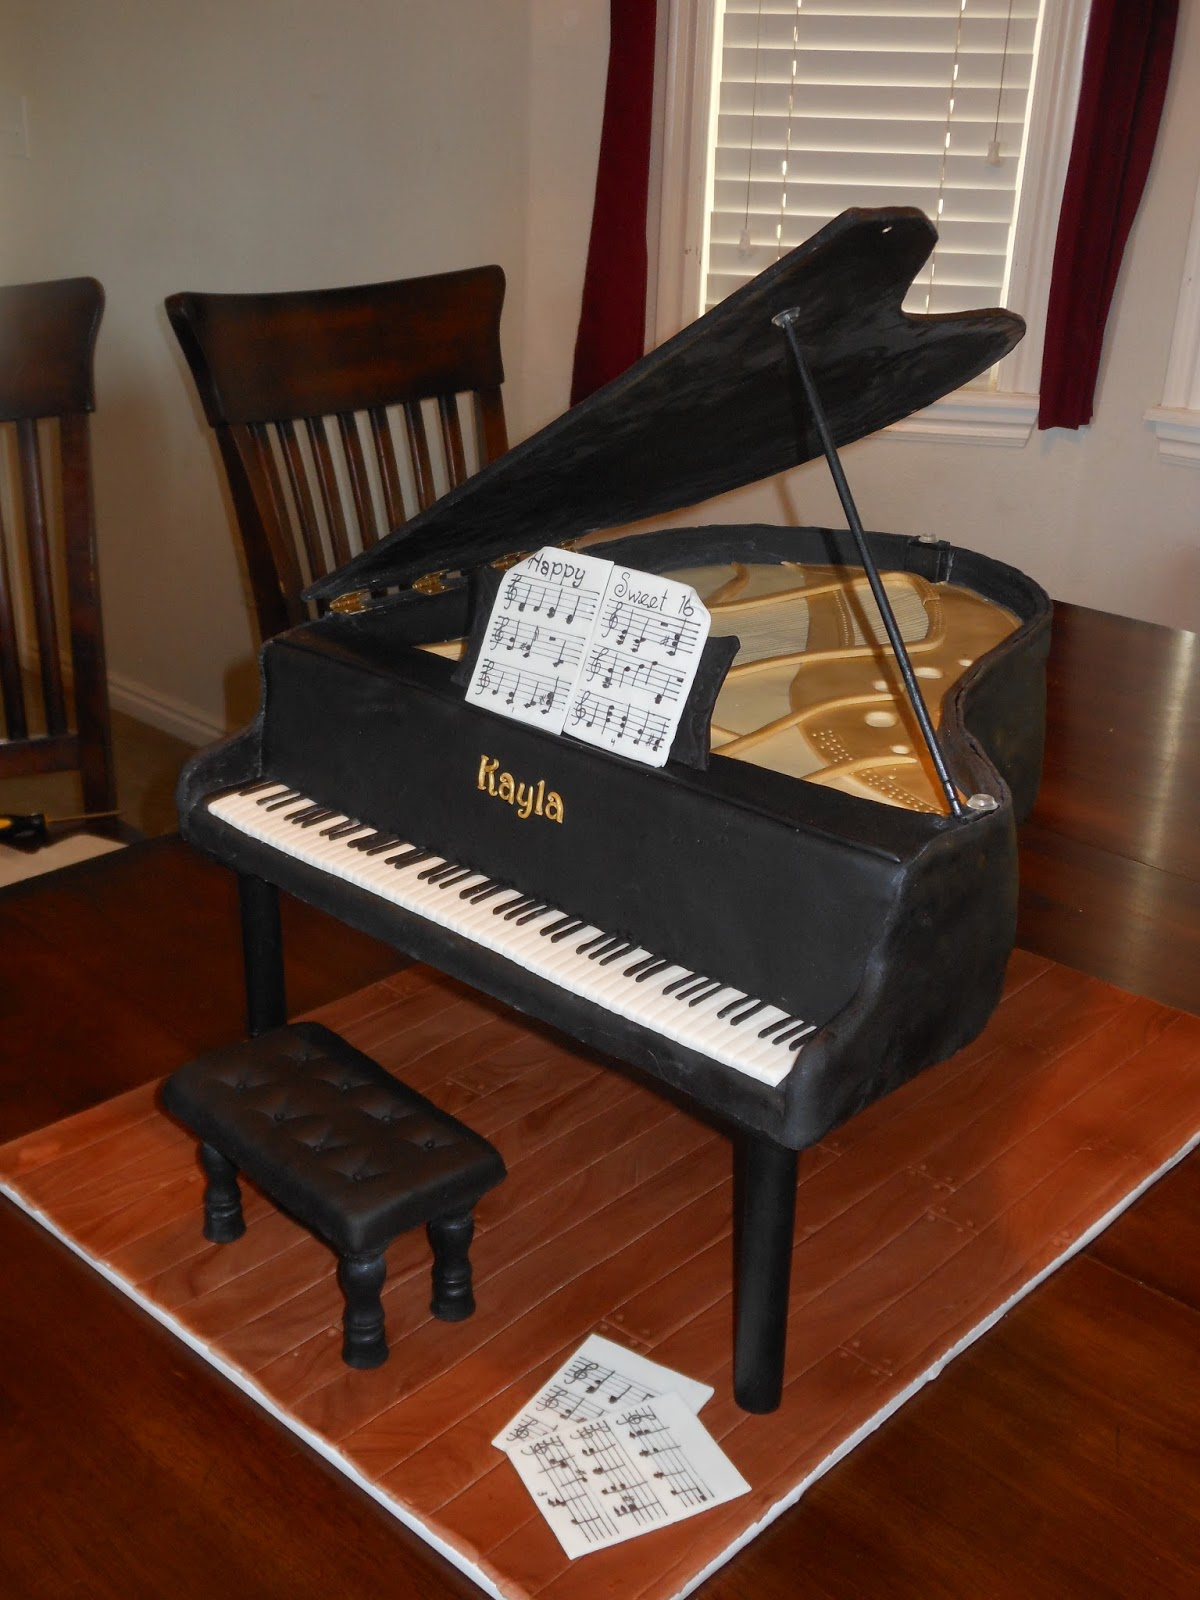 It 39 s a piece of cake how to make a grand piano cake for Small grand piano size